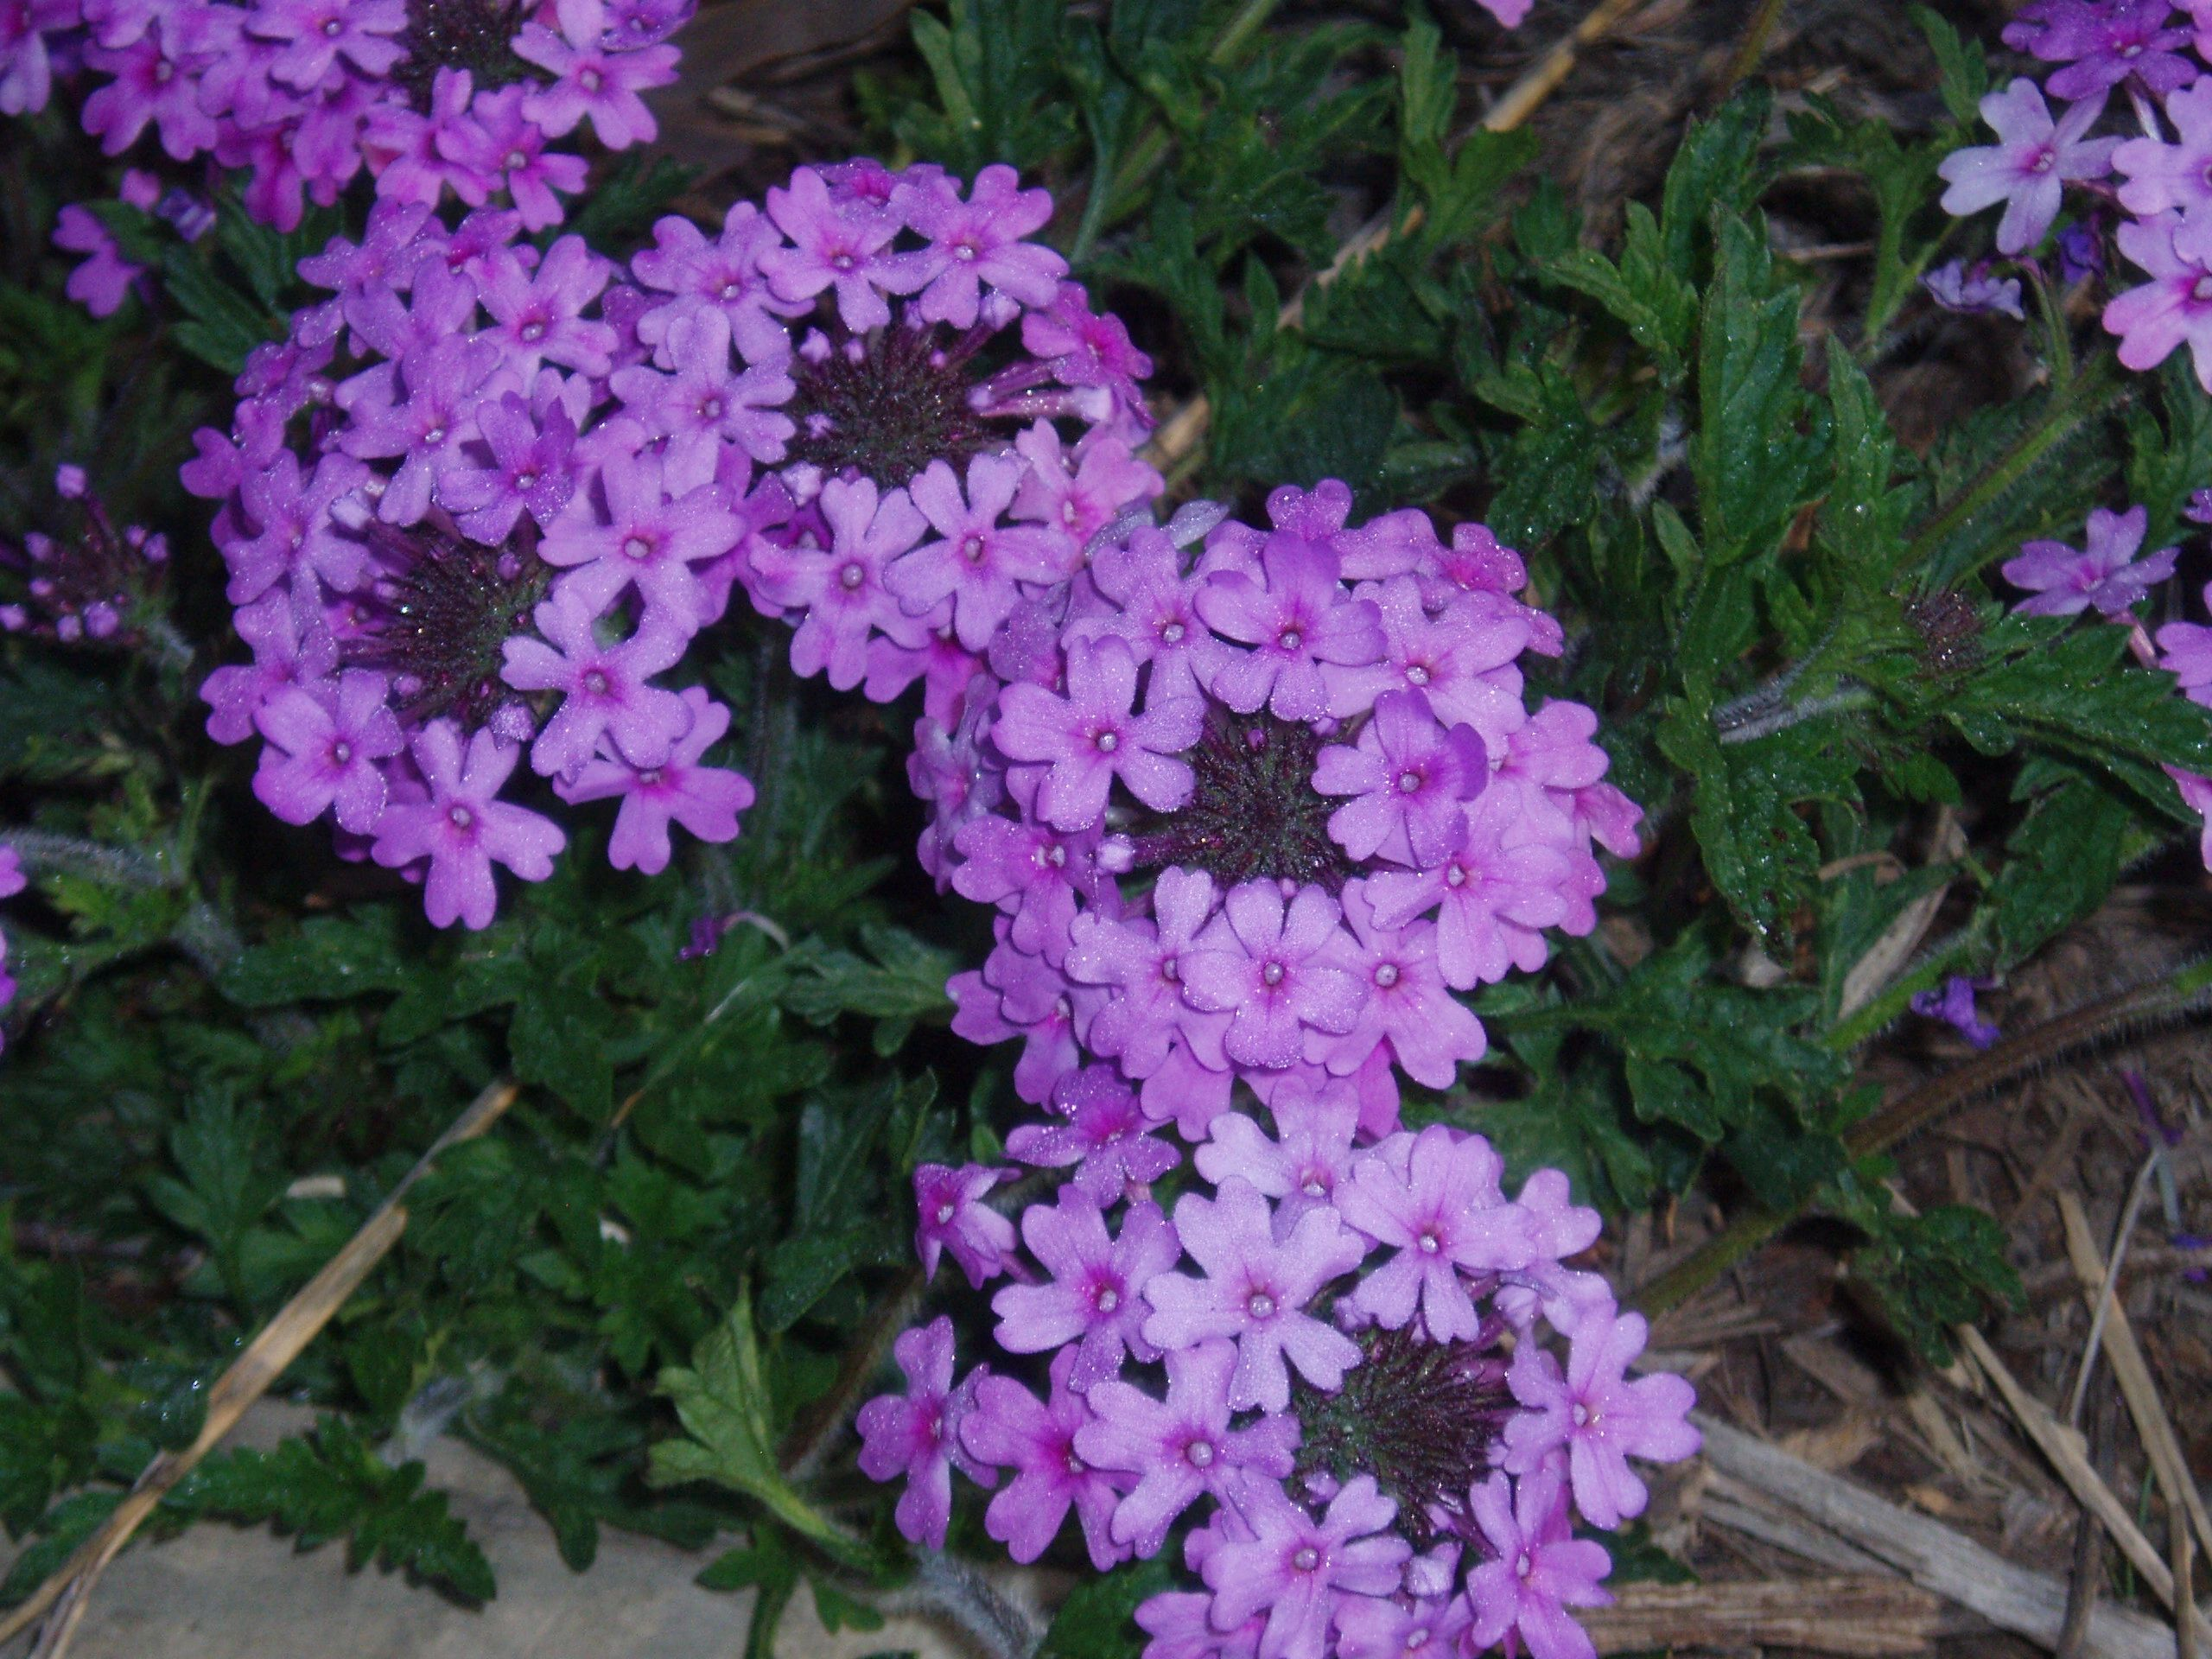 "{""blocks"":[{""key"":""3ii4c"",""text"":"" Glandularia canaden (Verbena canadensis) Rose Vervain - potted plants  john@easywildflowers.com "",""type"":""unstyled"",""depth"":0,""inlineStyleRanges"":[],""entityRanges"":[],""data"":{}}],""entityMap"":{}}"